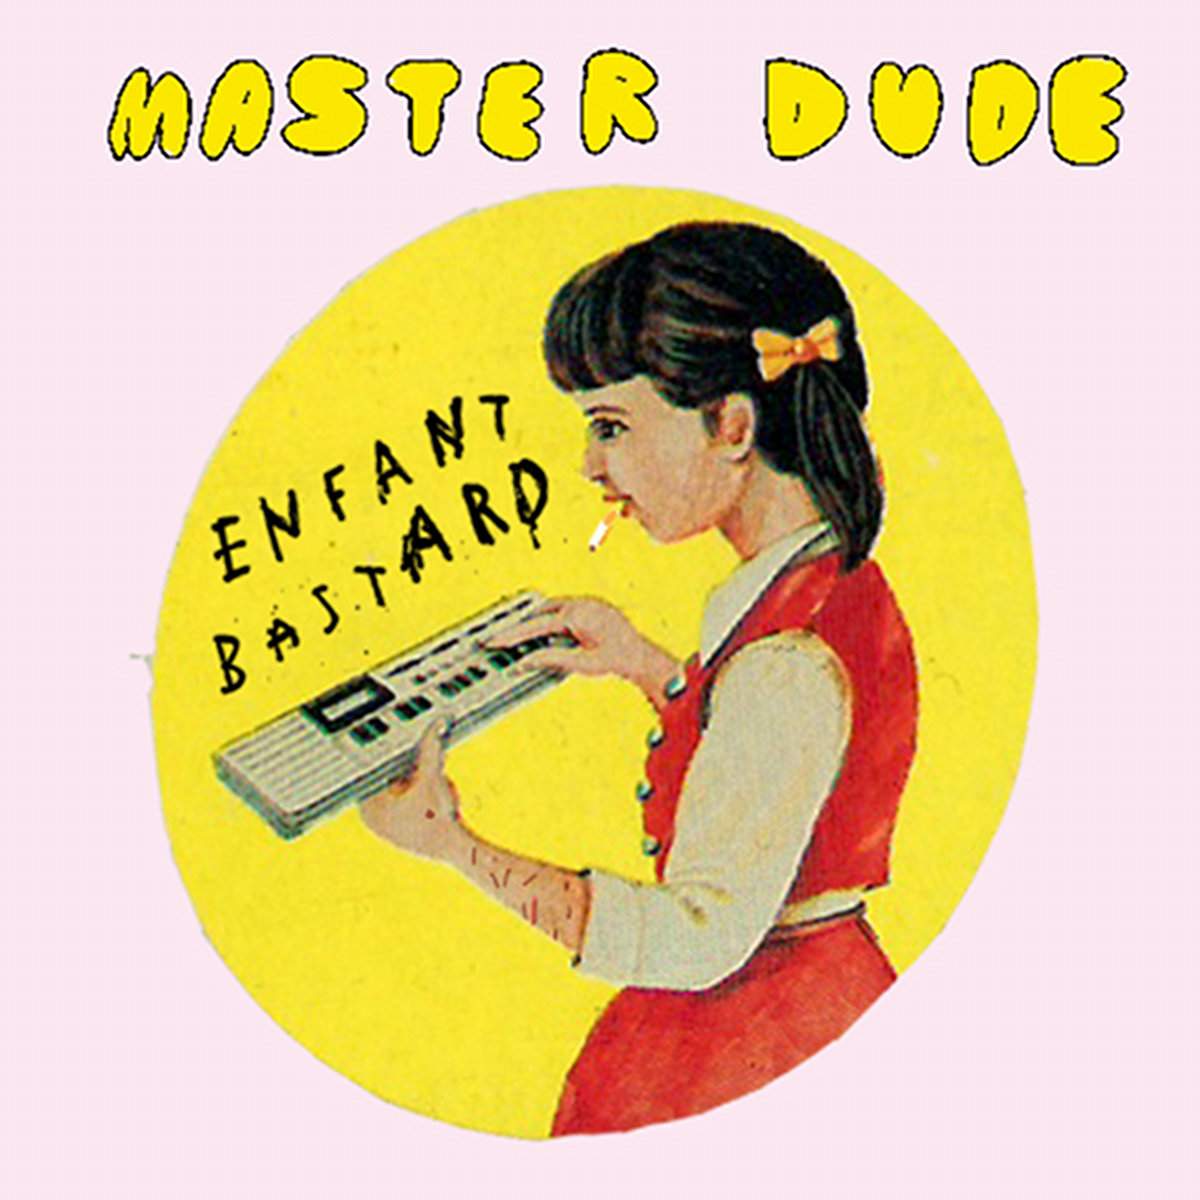 Wanker From Master Dude By Enfant Bastard